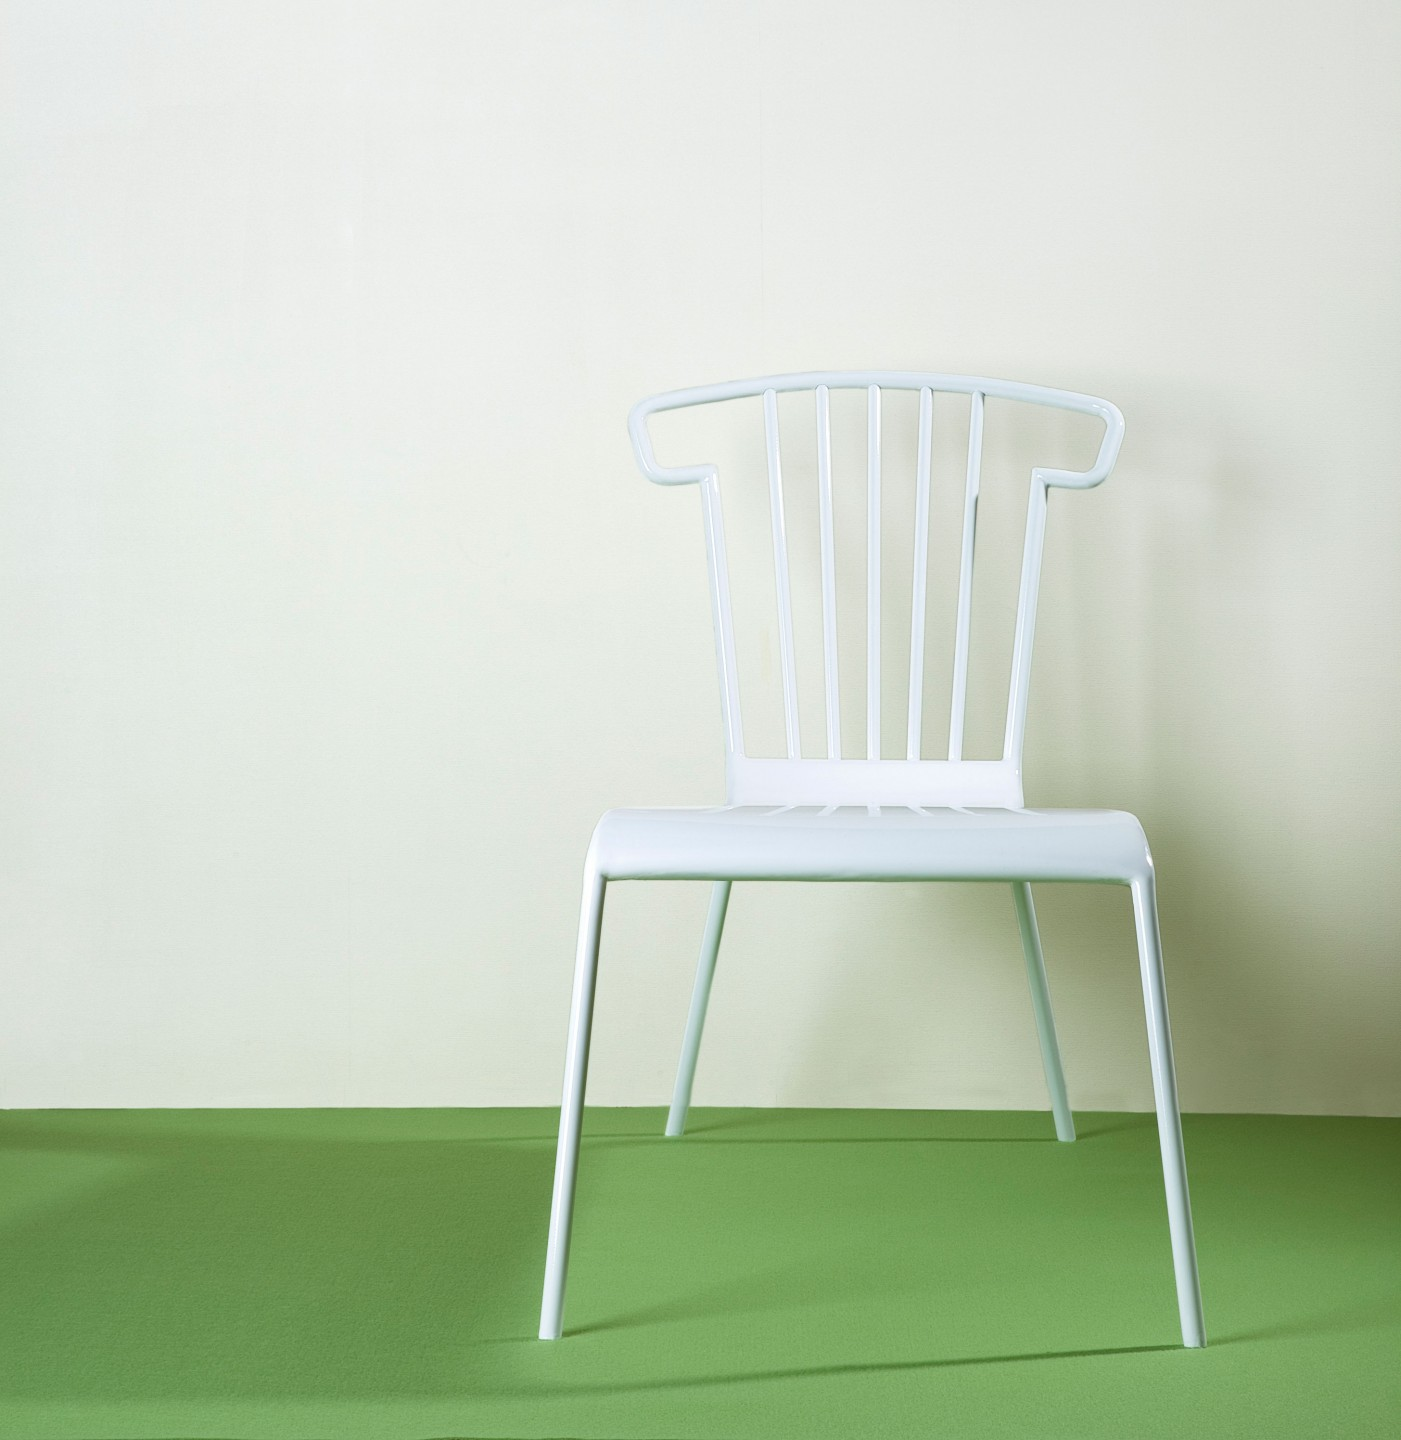 Chair-bench-2